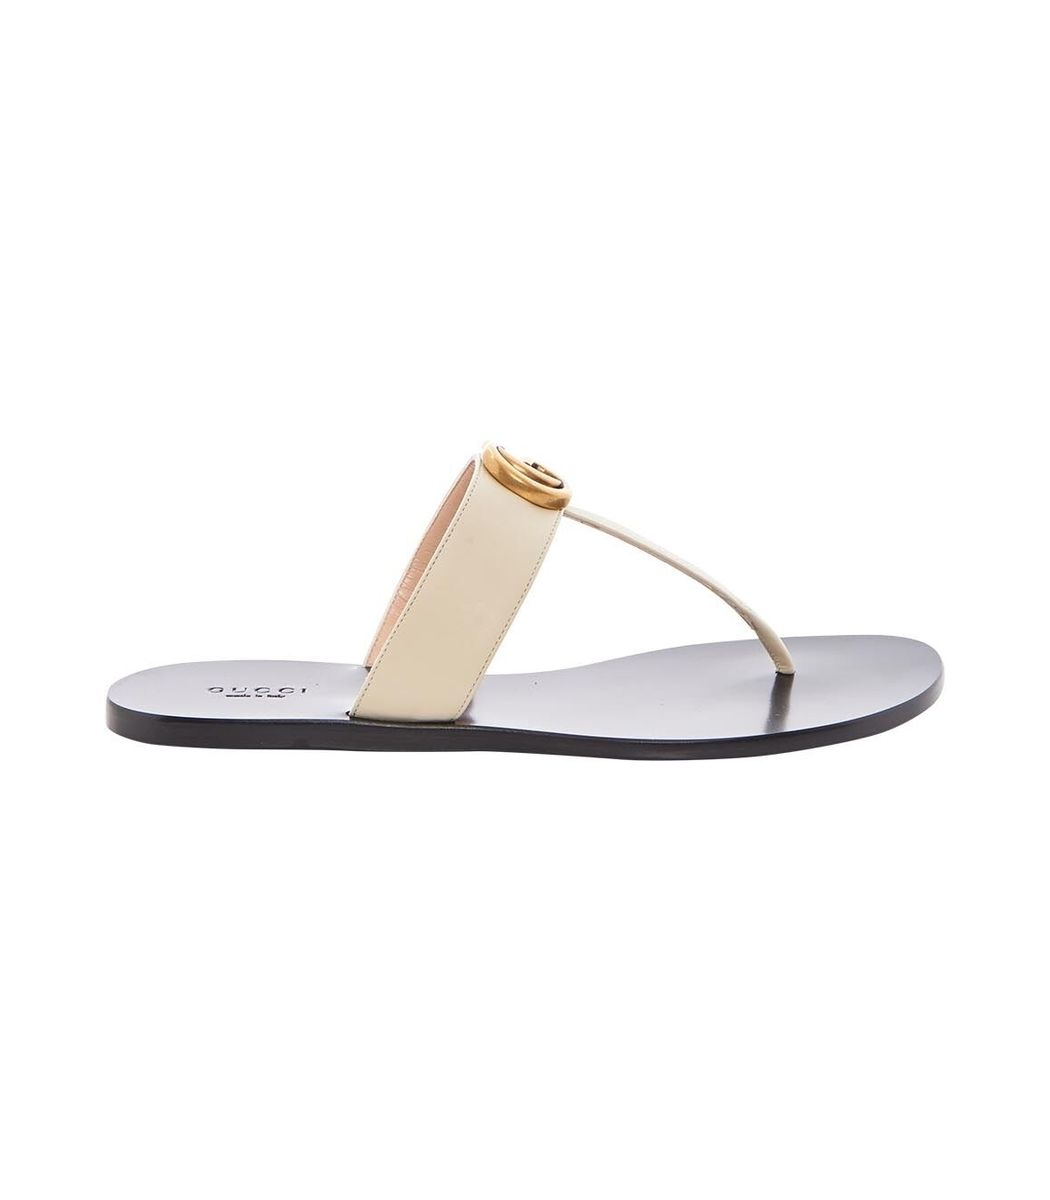 3e2c4dbac GUCCI Multicolor Leather Thong Sandal with Double G.  gucci  shoes ...